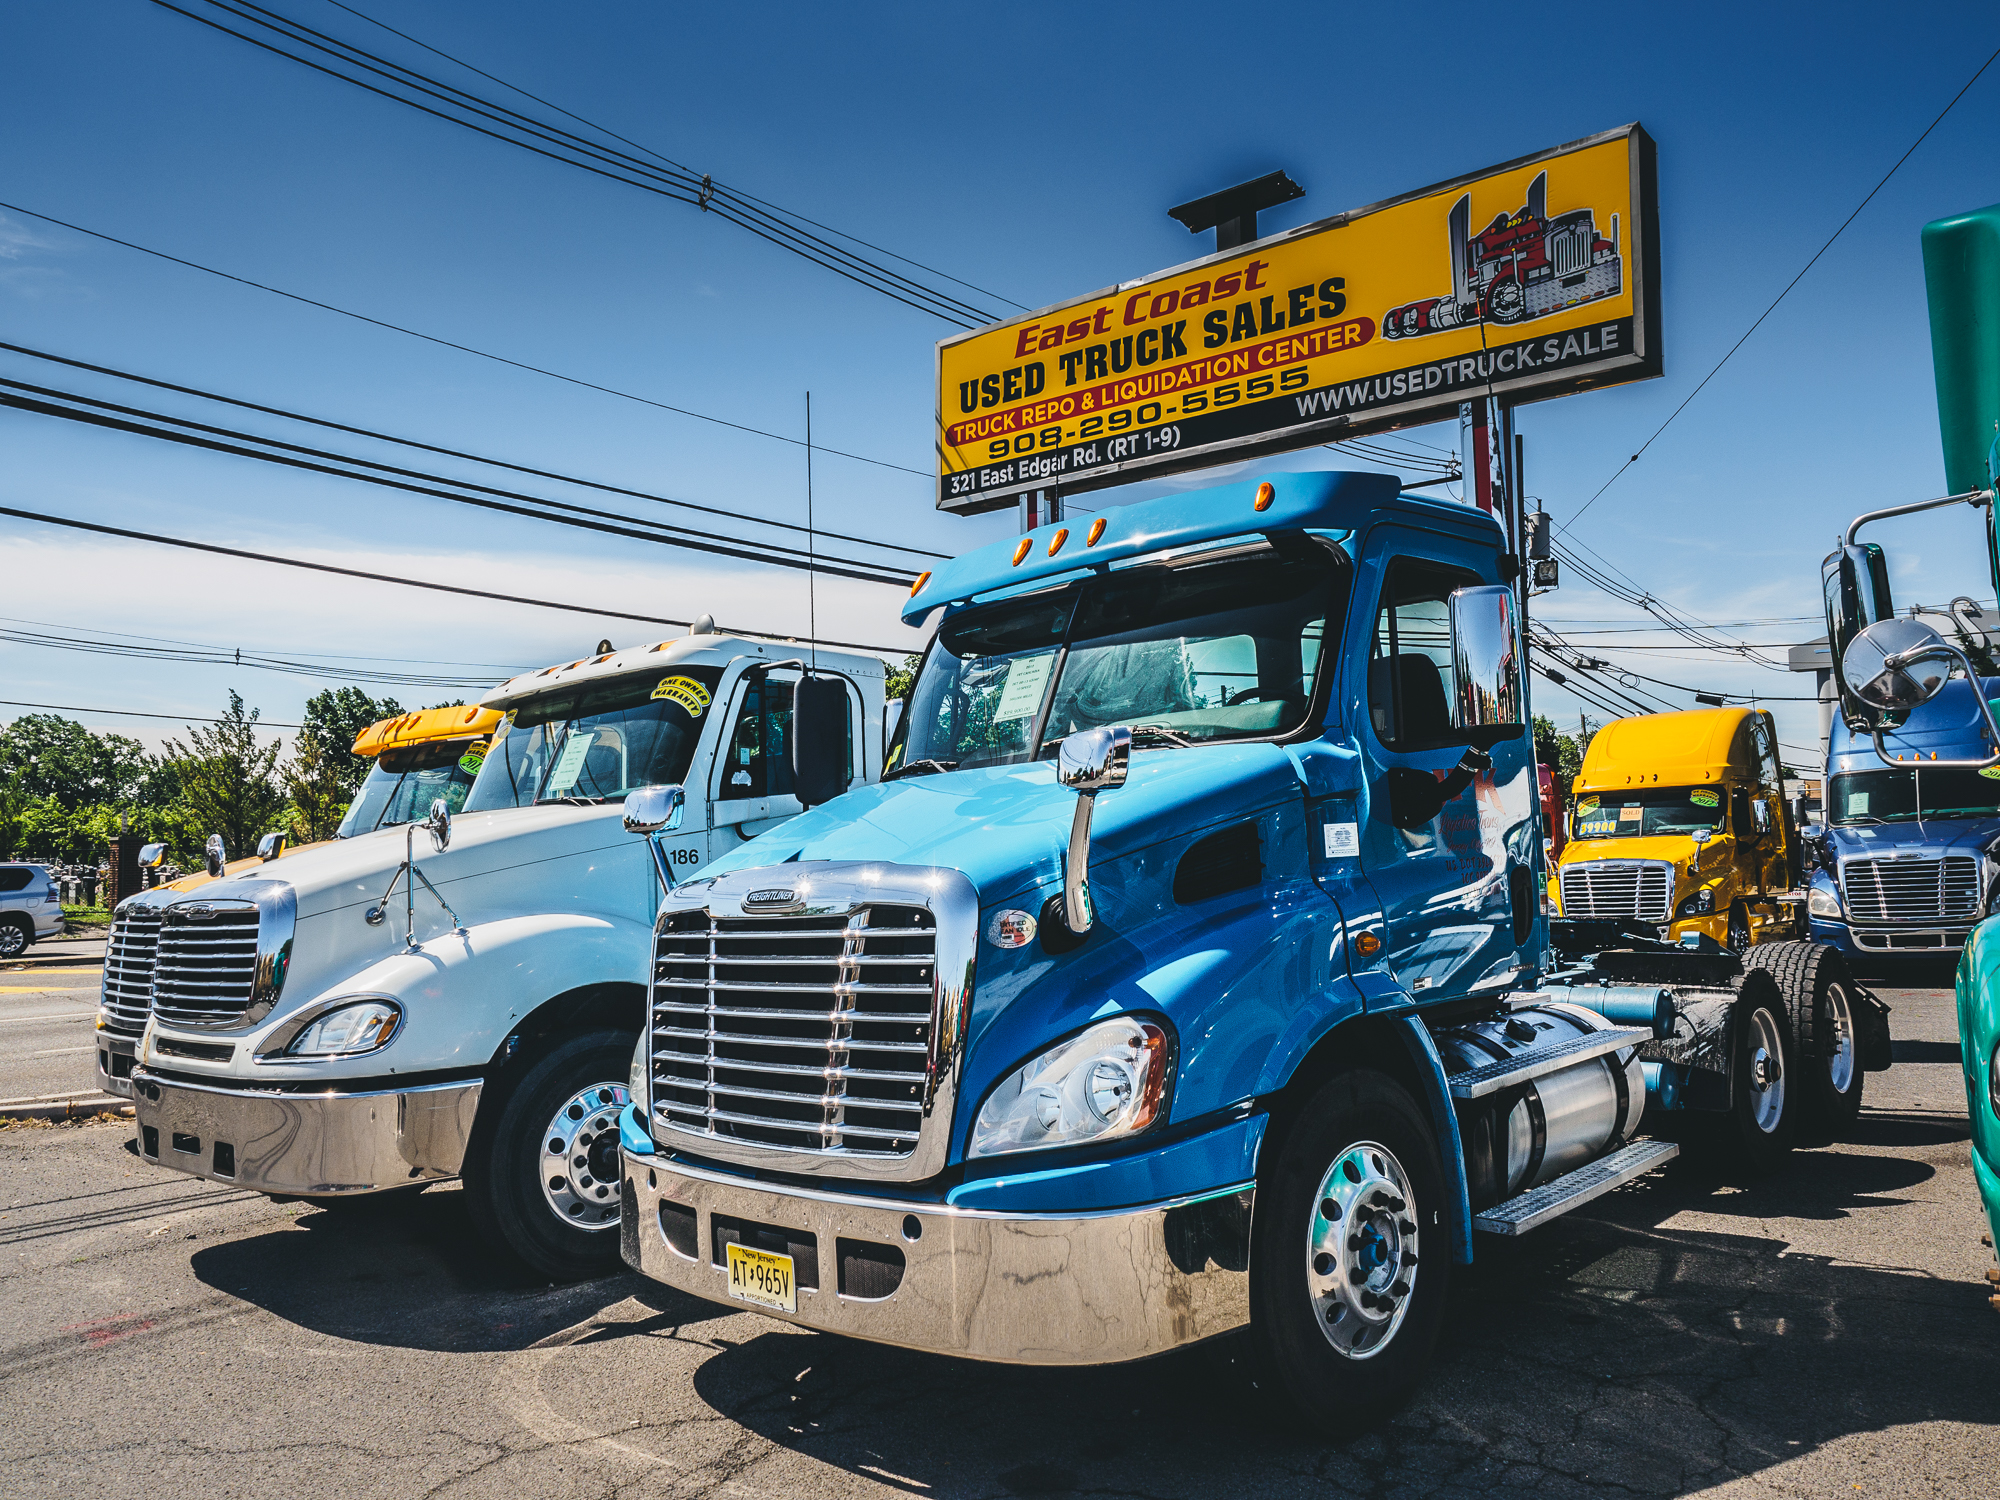 about east coast used truck sales